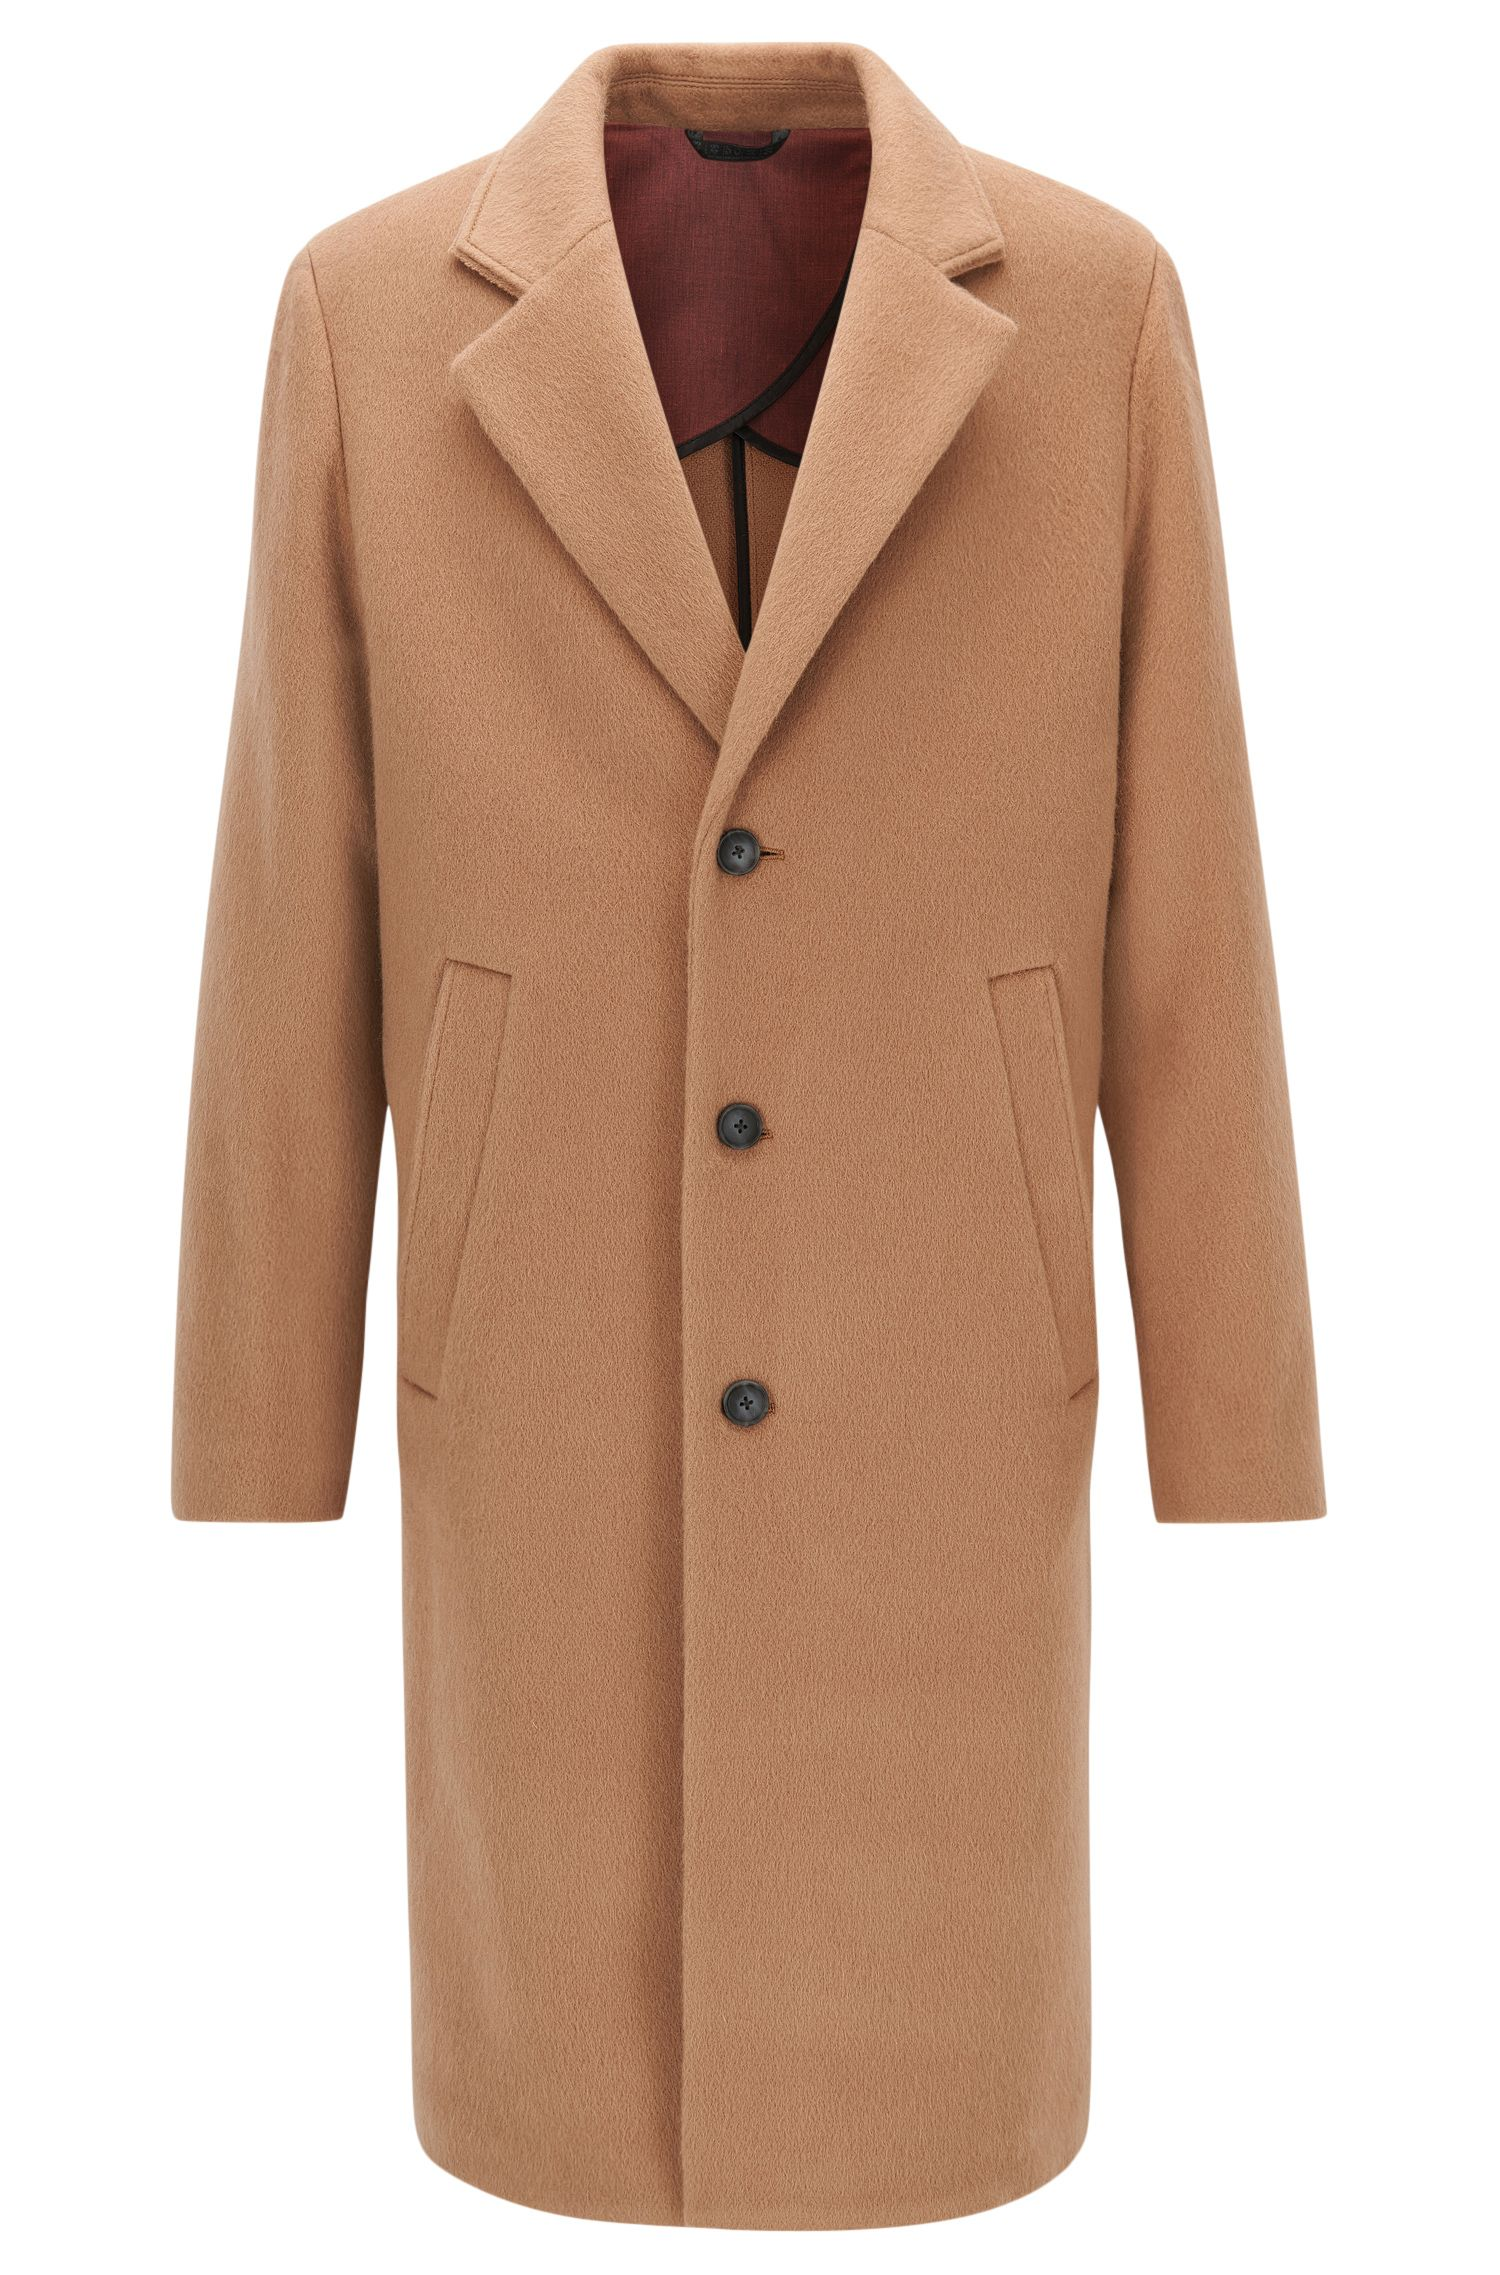 Long-length wool-blend overcoat in a regular fit